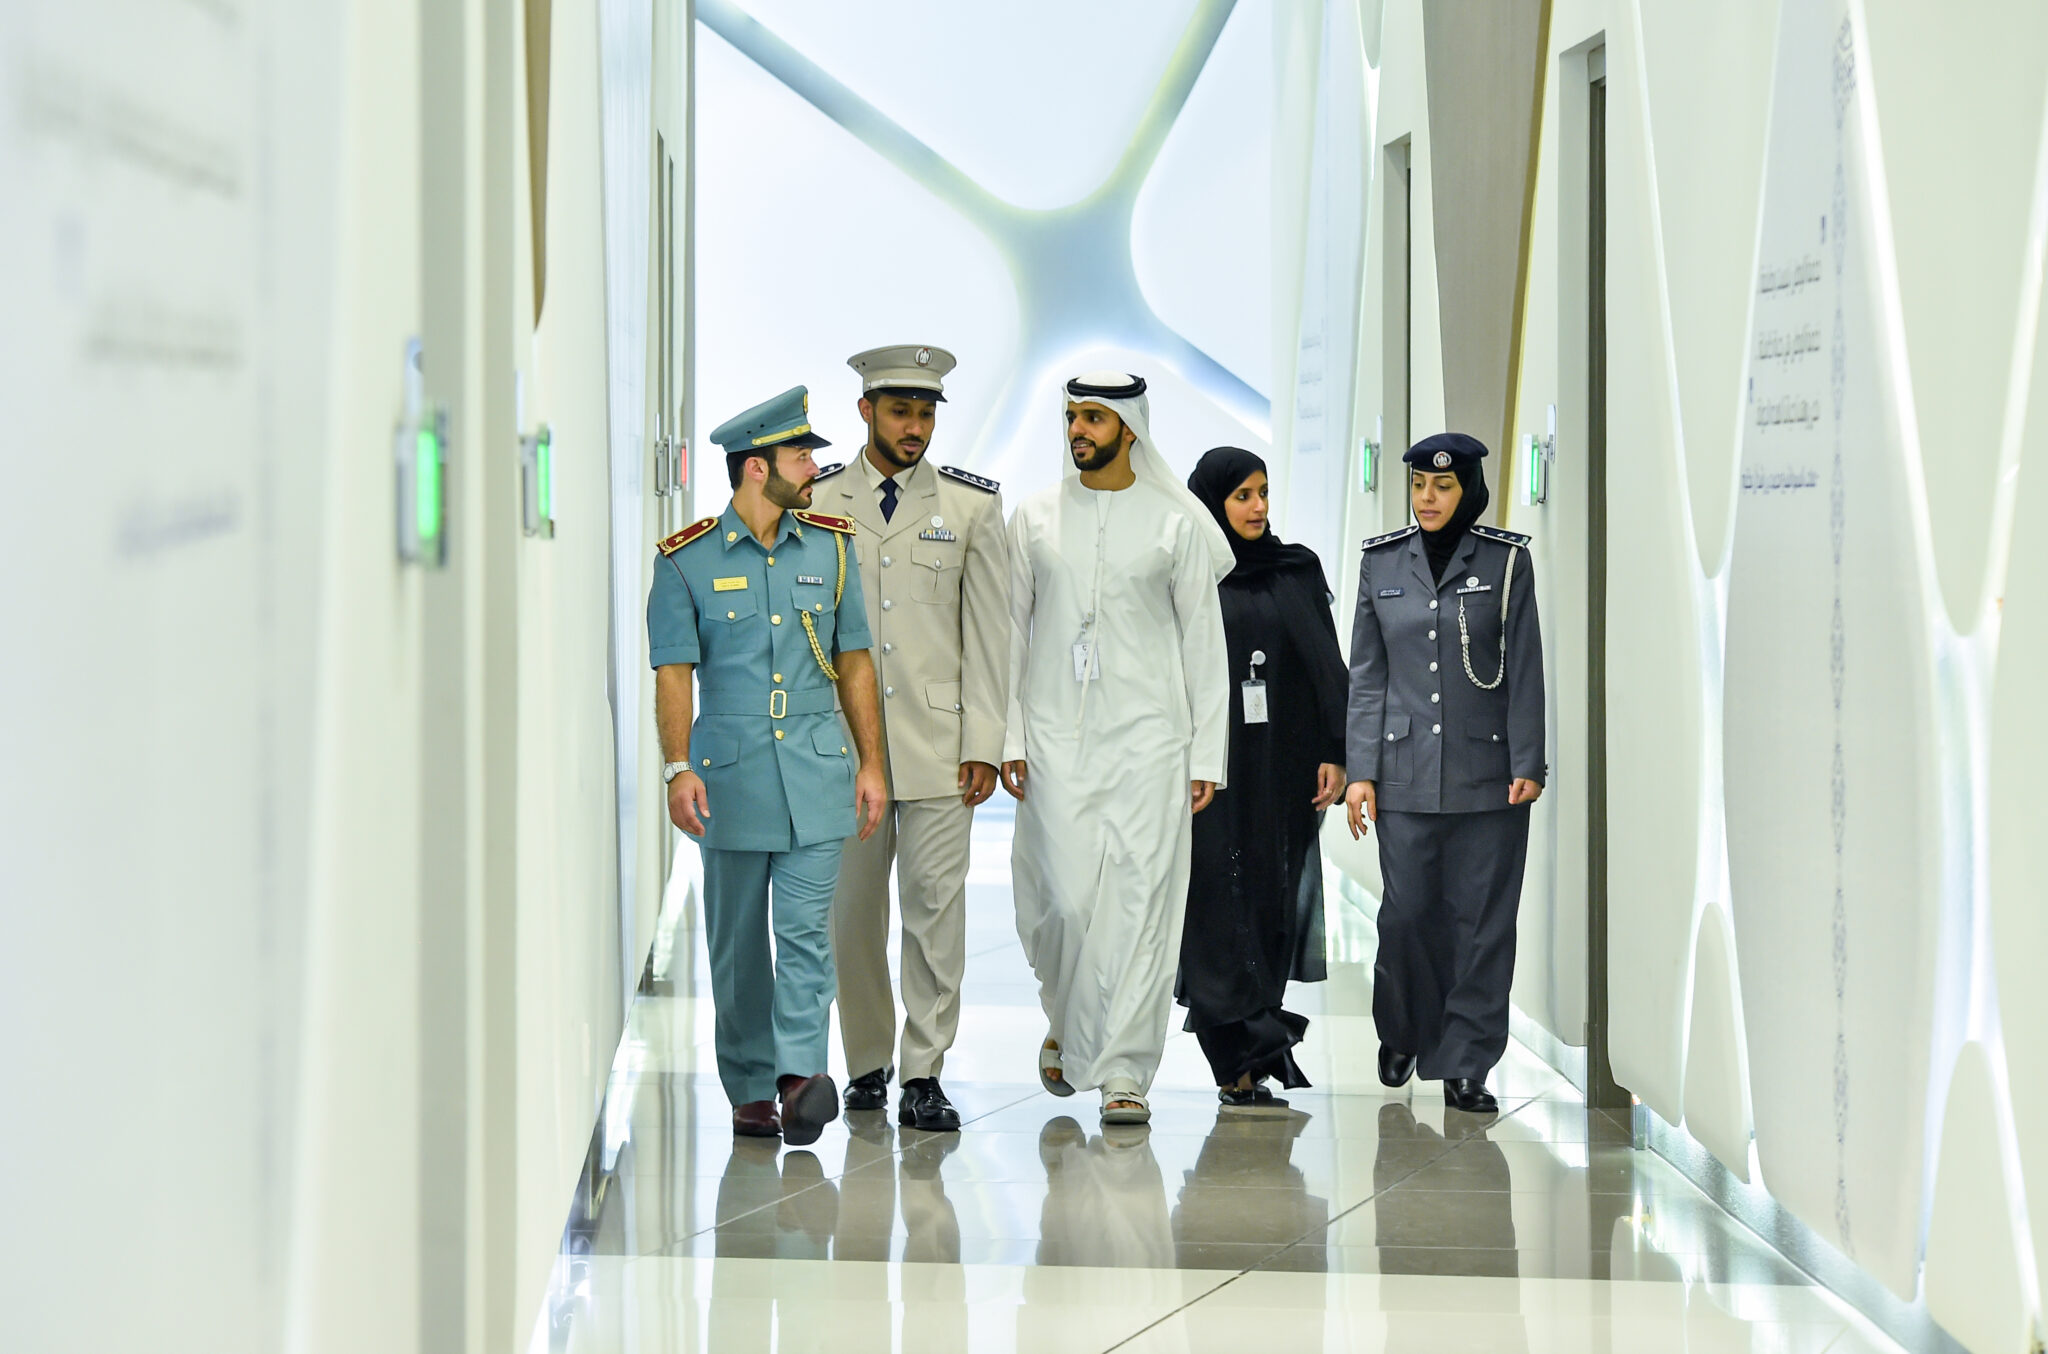 Rabdan Academy introduces Master of Science in Policing and Security Leadership for the first time in UAE